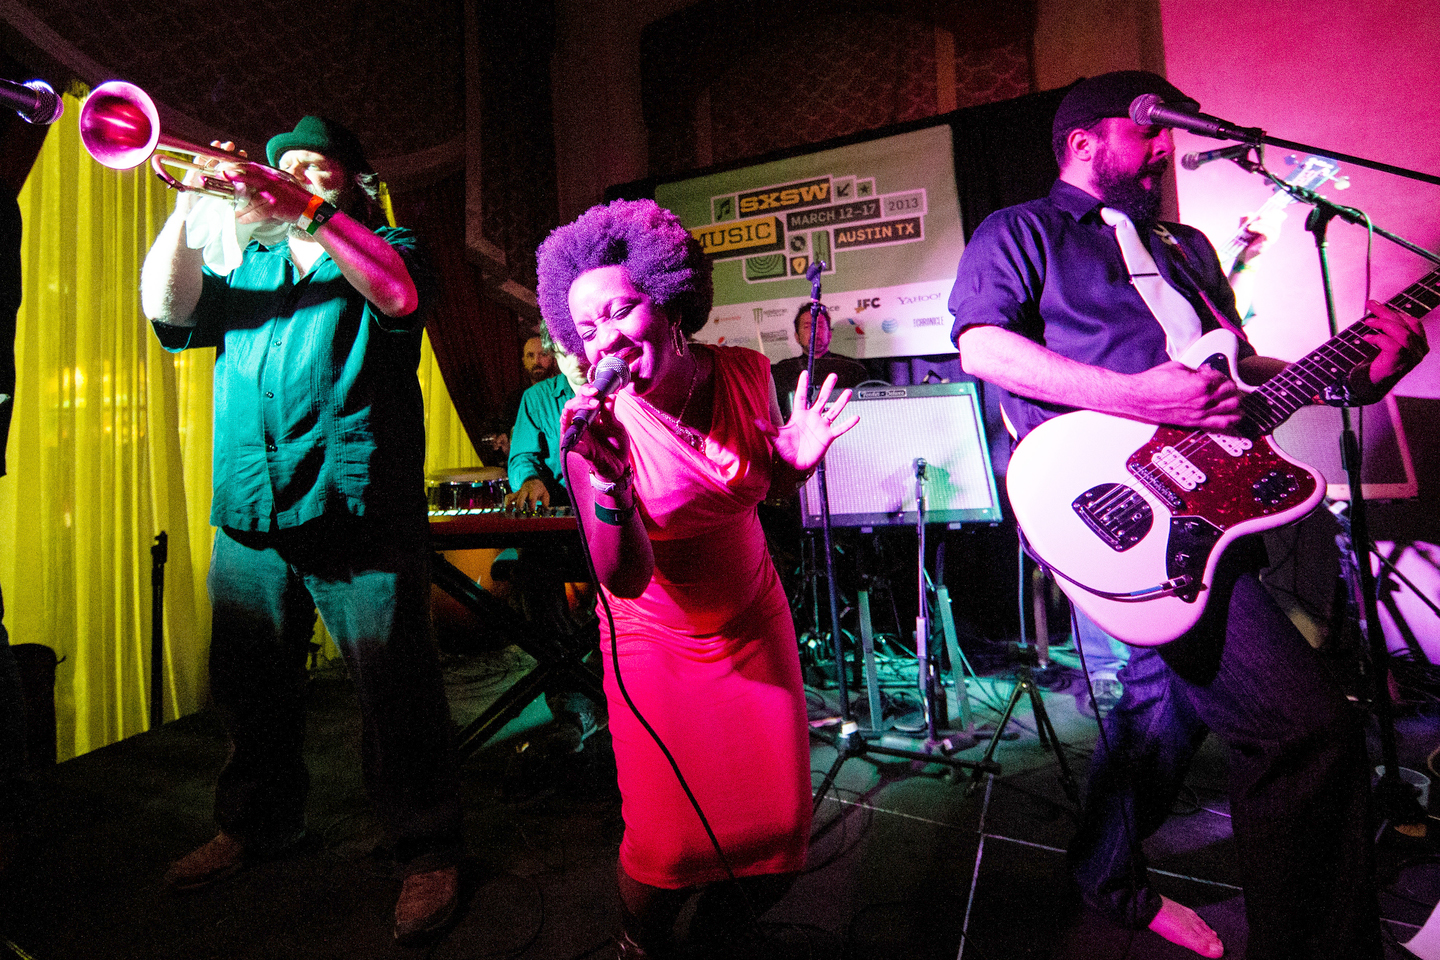 Akina Adderley performs in the Victorian Room at the Driskill Hotel in Austin, Texas at SXSW 2013